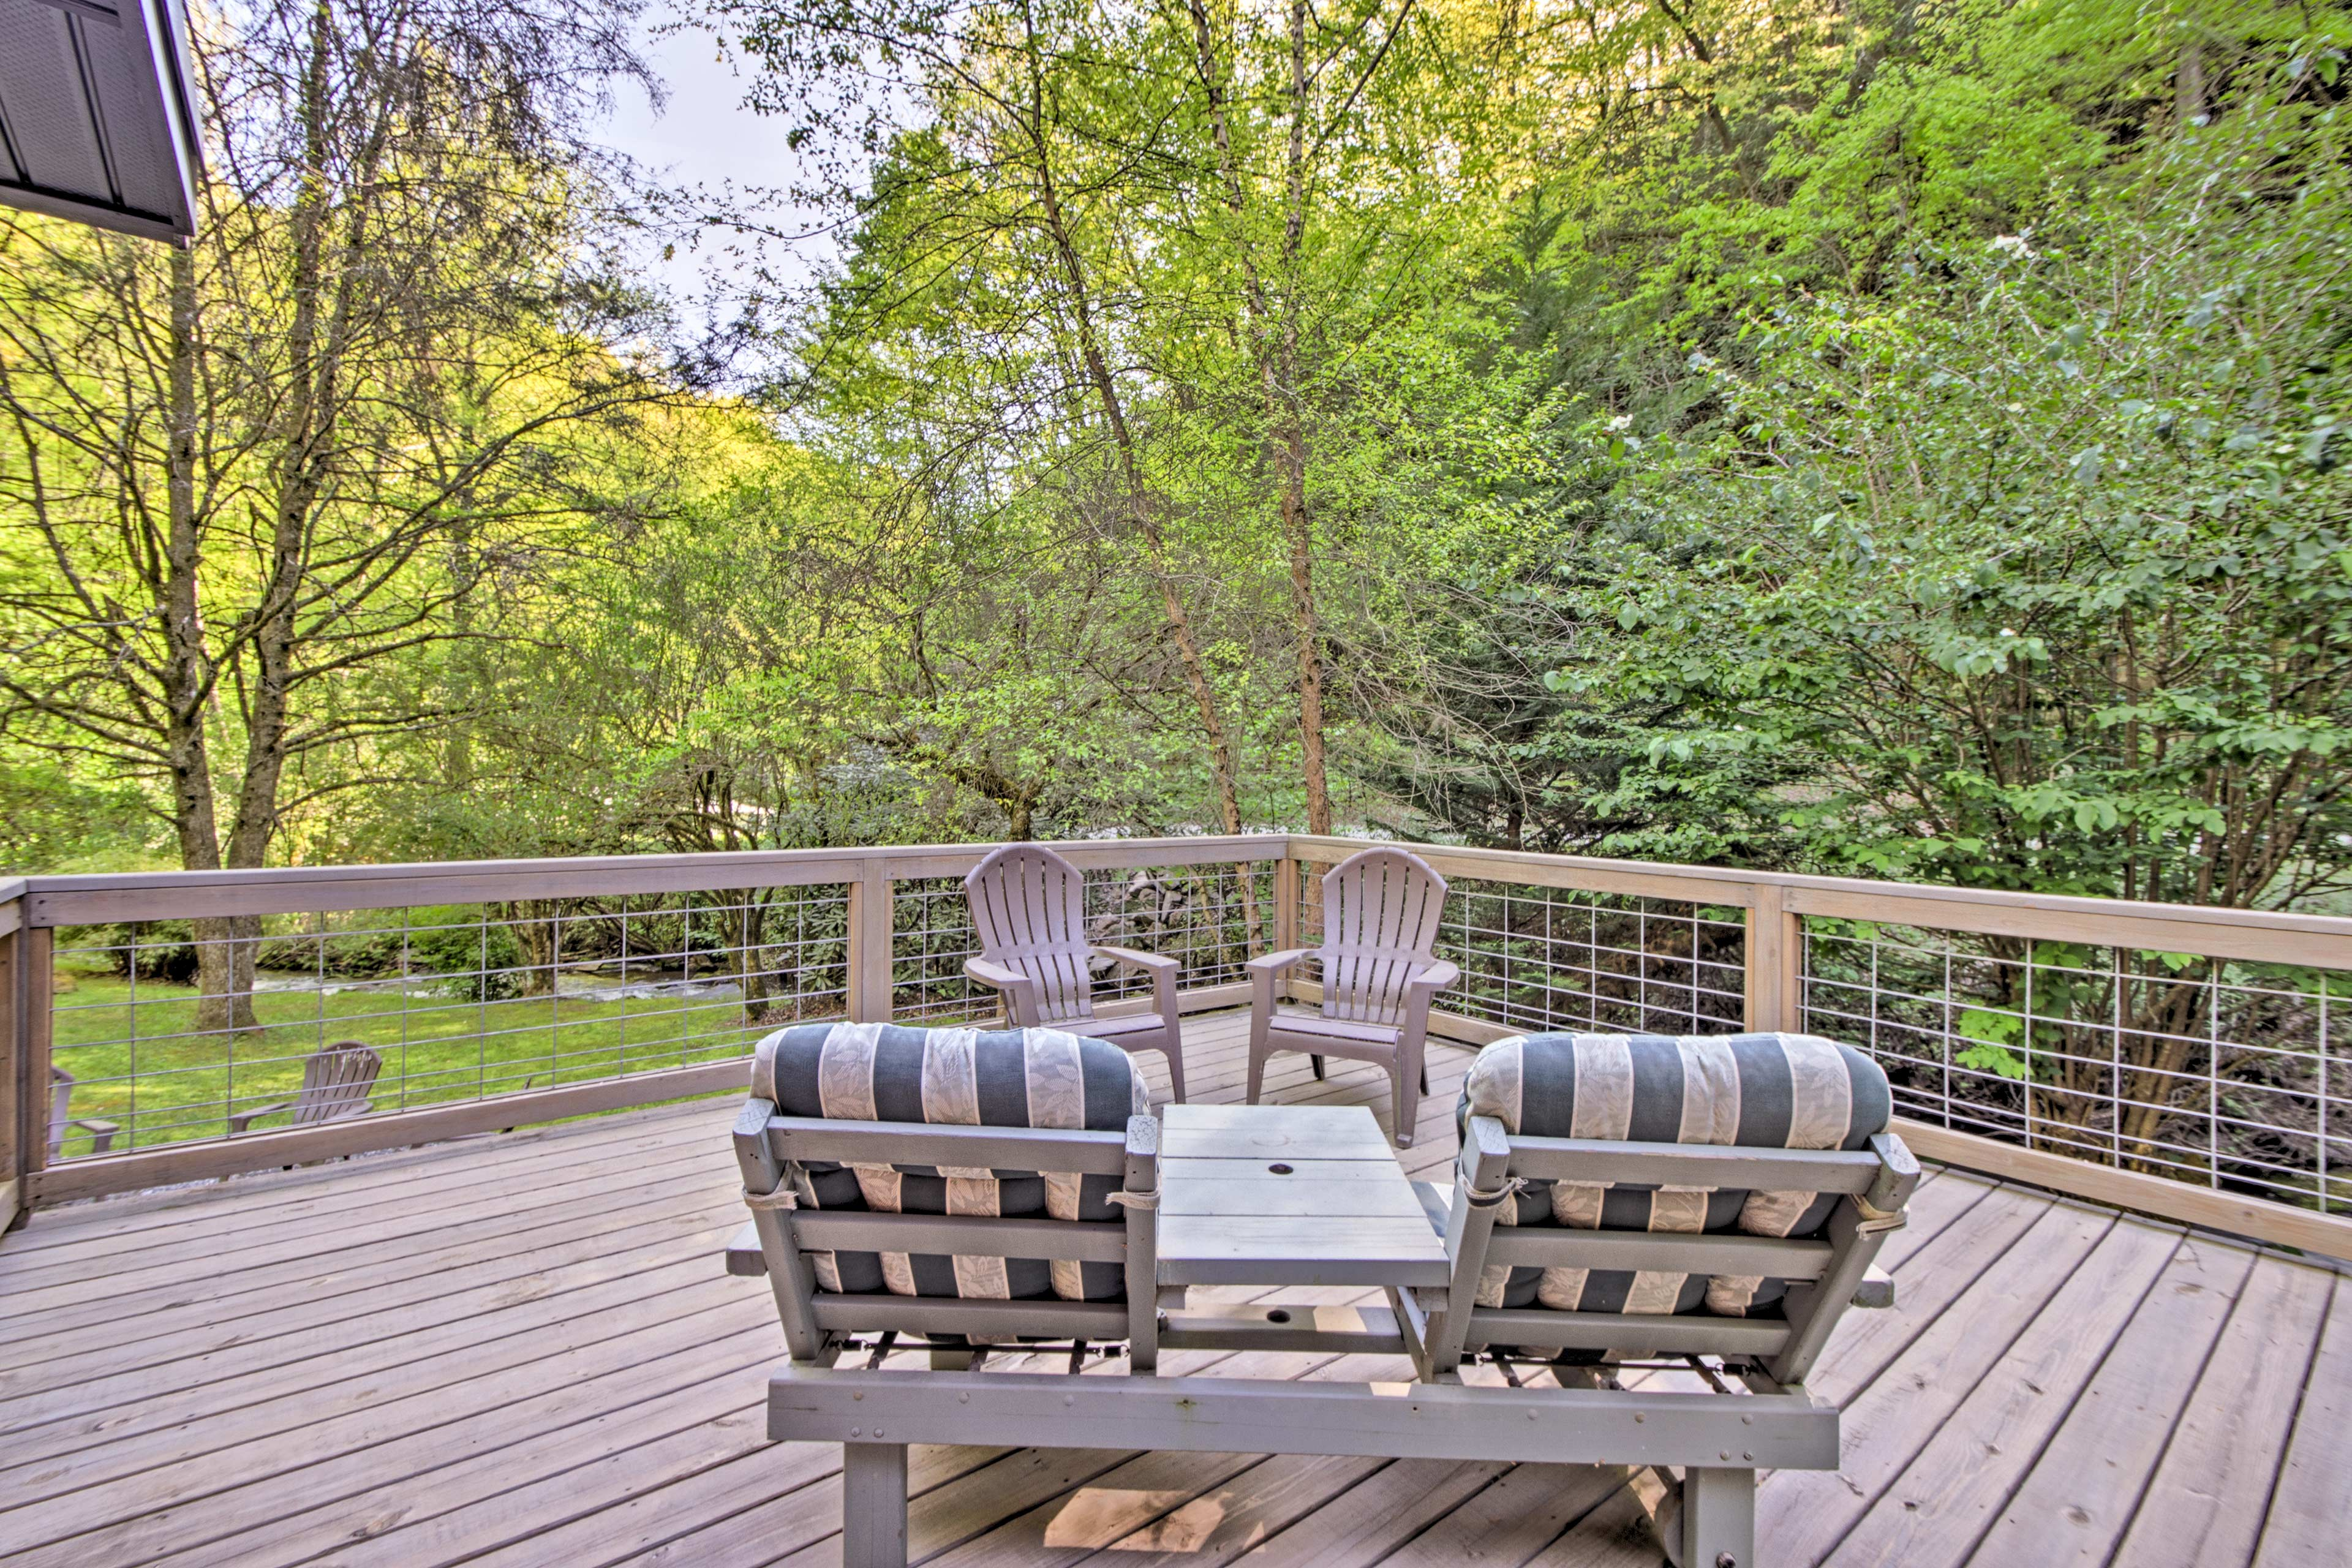 Listen to the sound of rushing water passing by in Cooper Creeks from the porch.